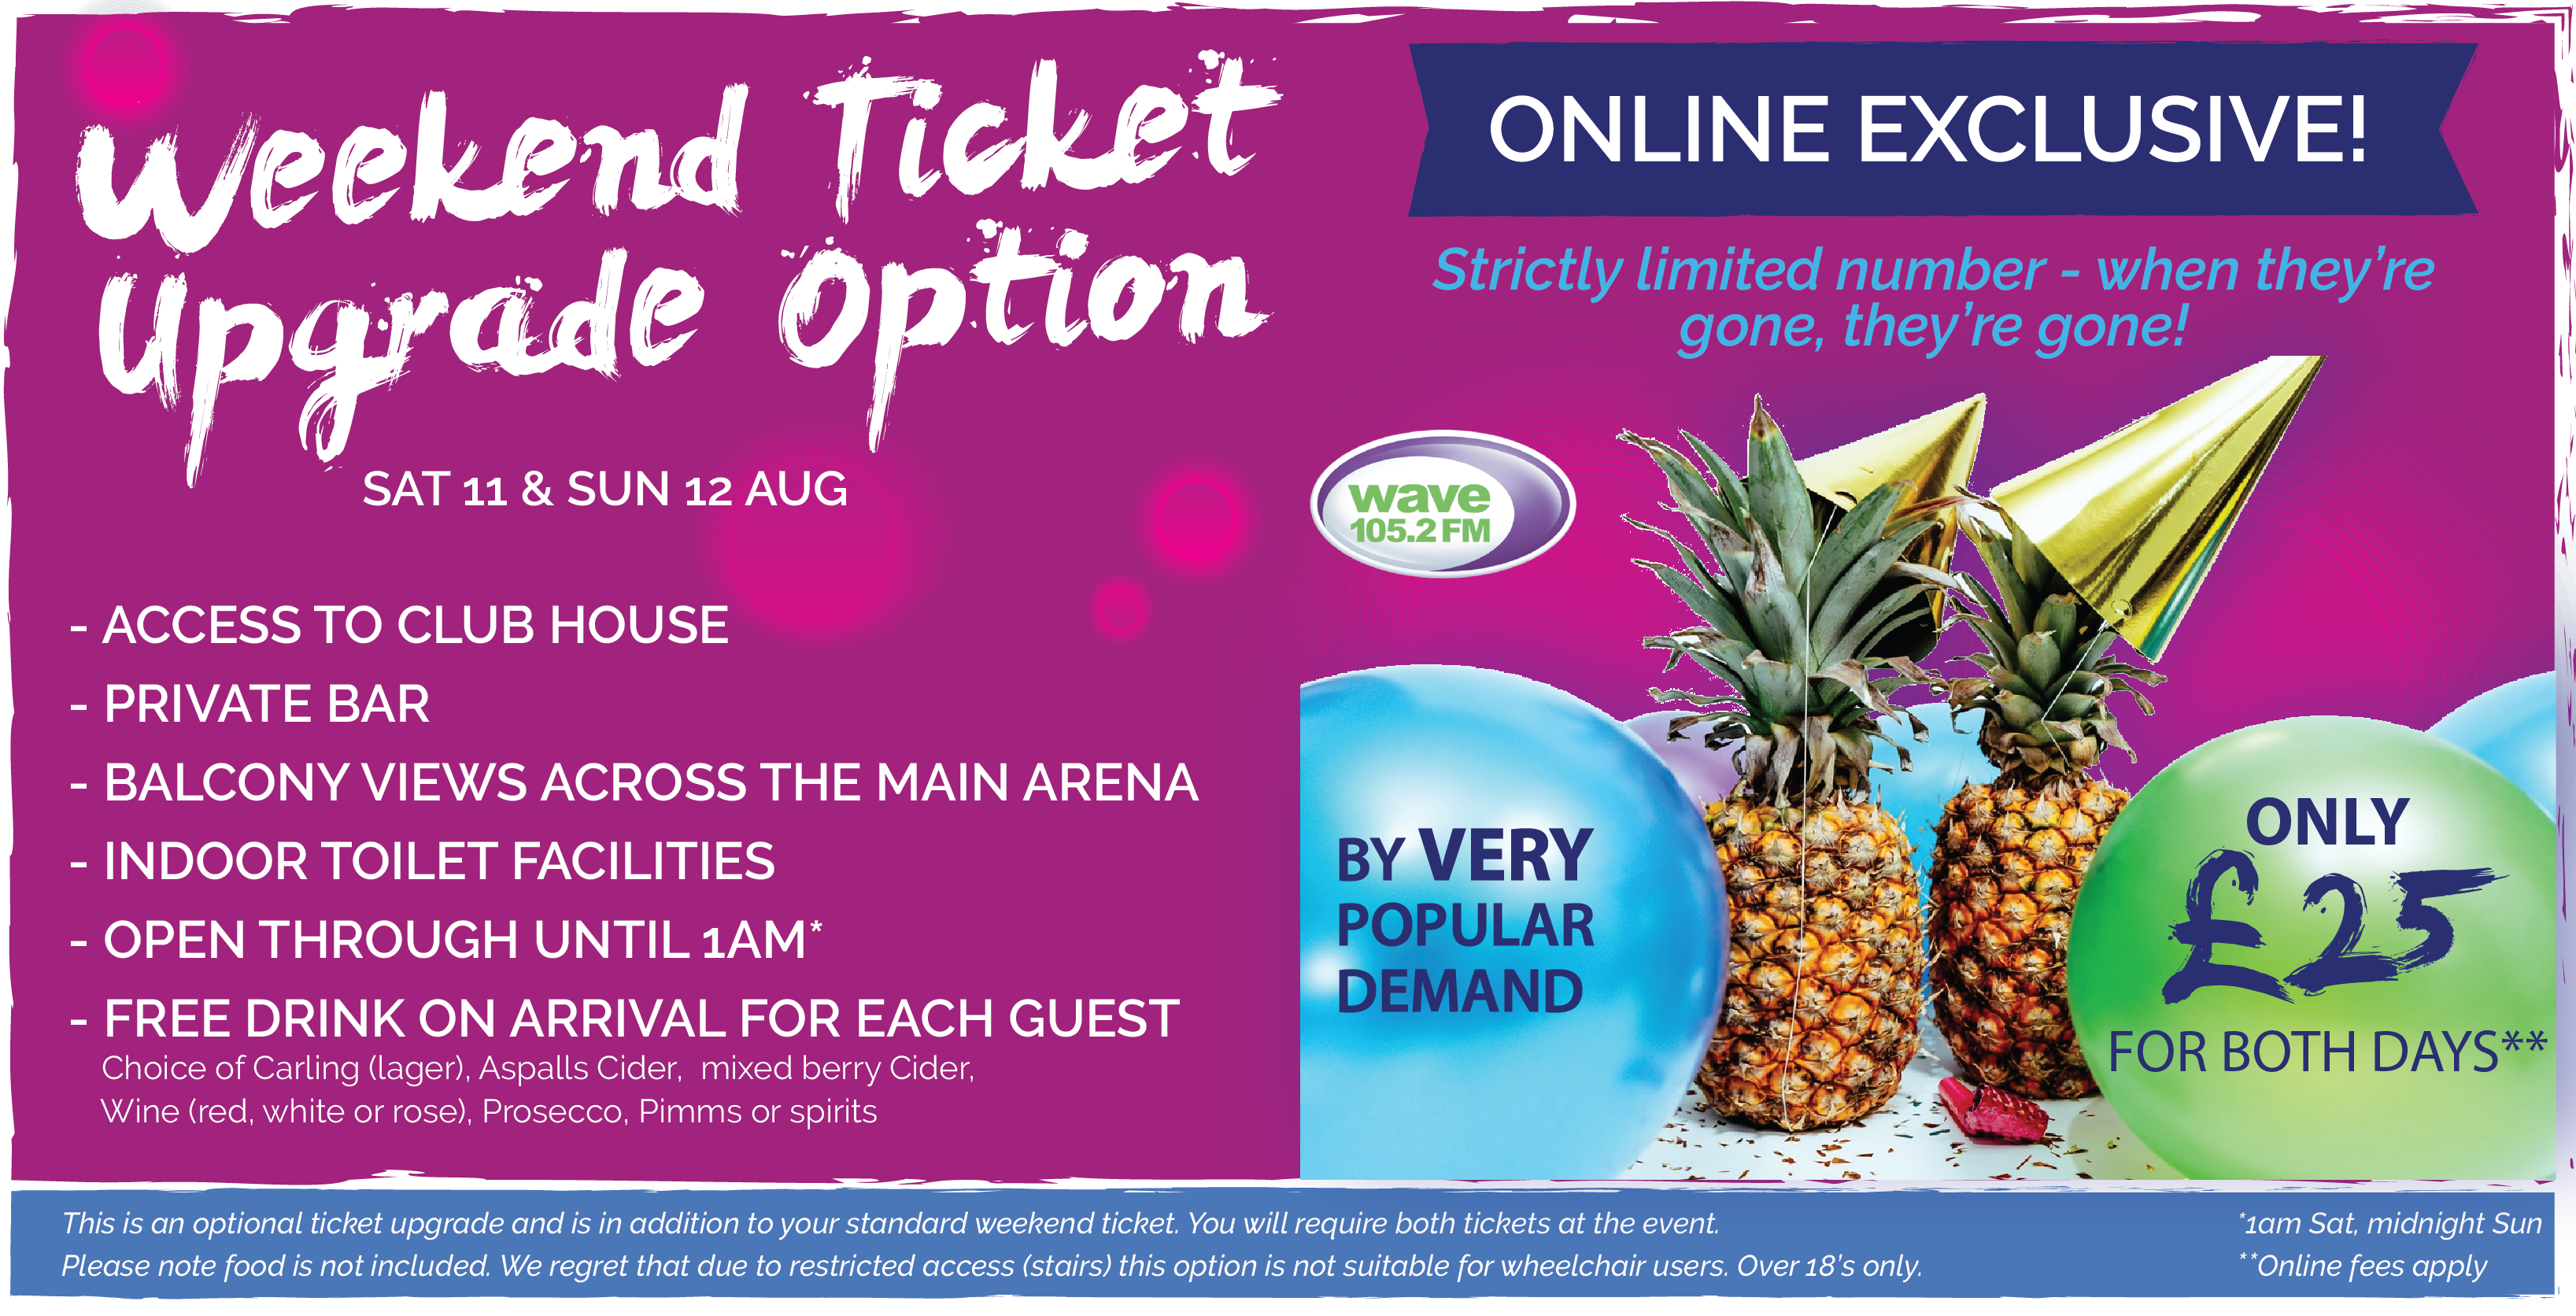 Weekend ticket upgrade option - sorry, sold out!